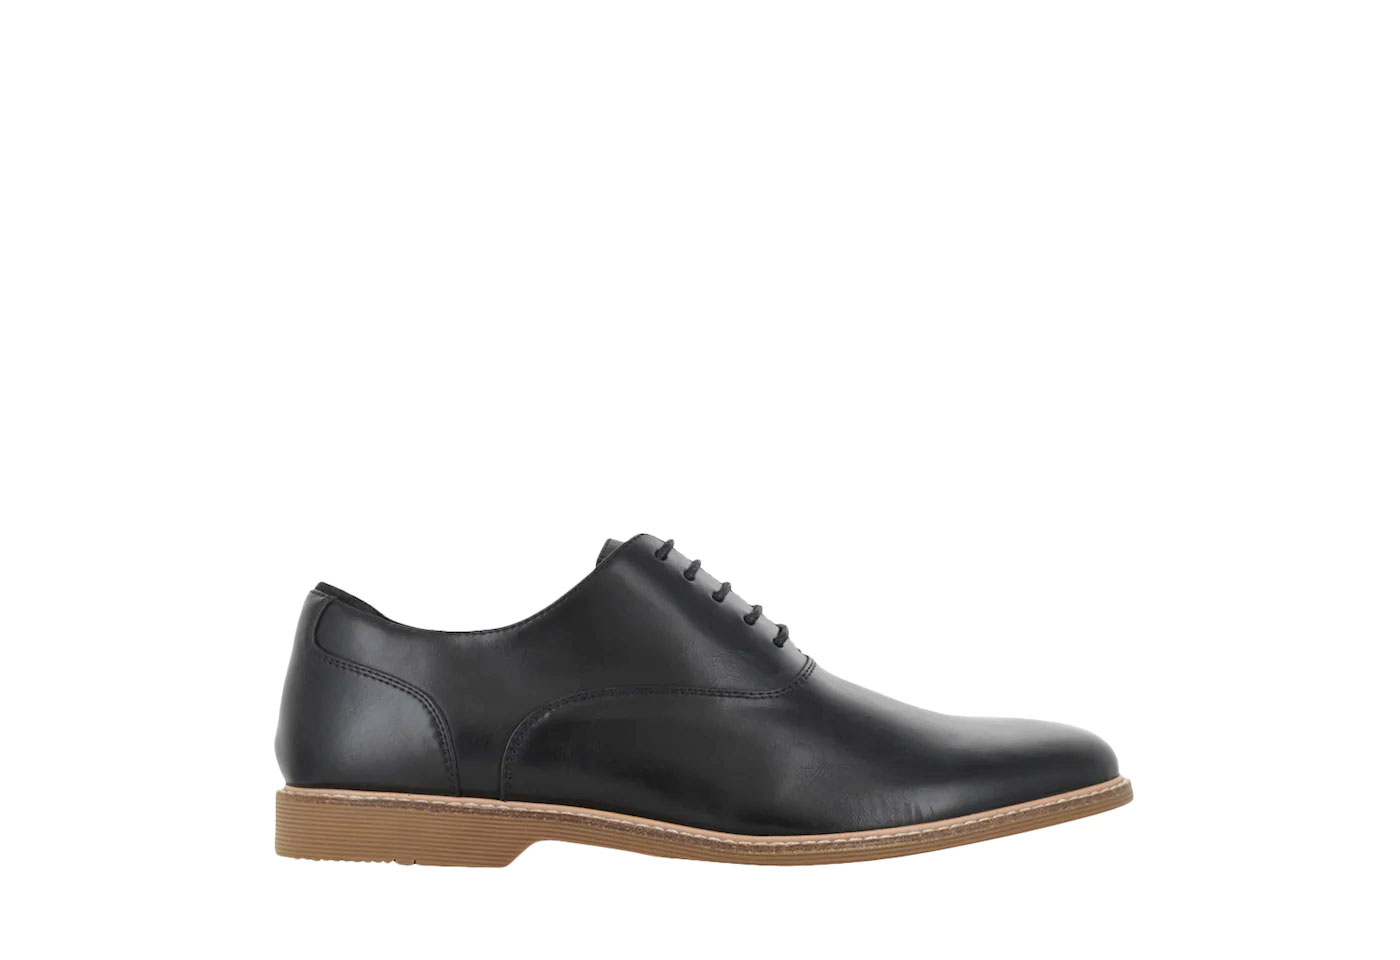 The Shoe Company:Steve Madden皮鞋只賣$25.38